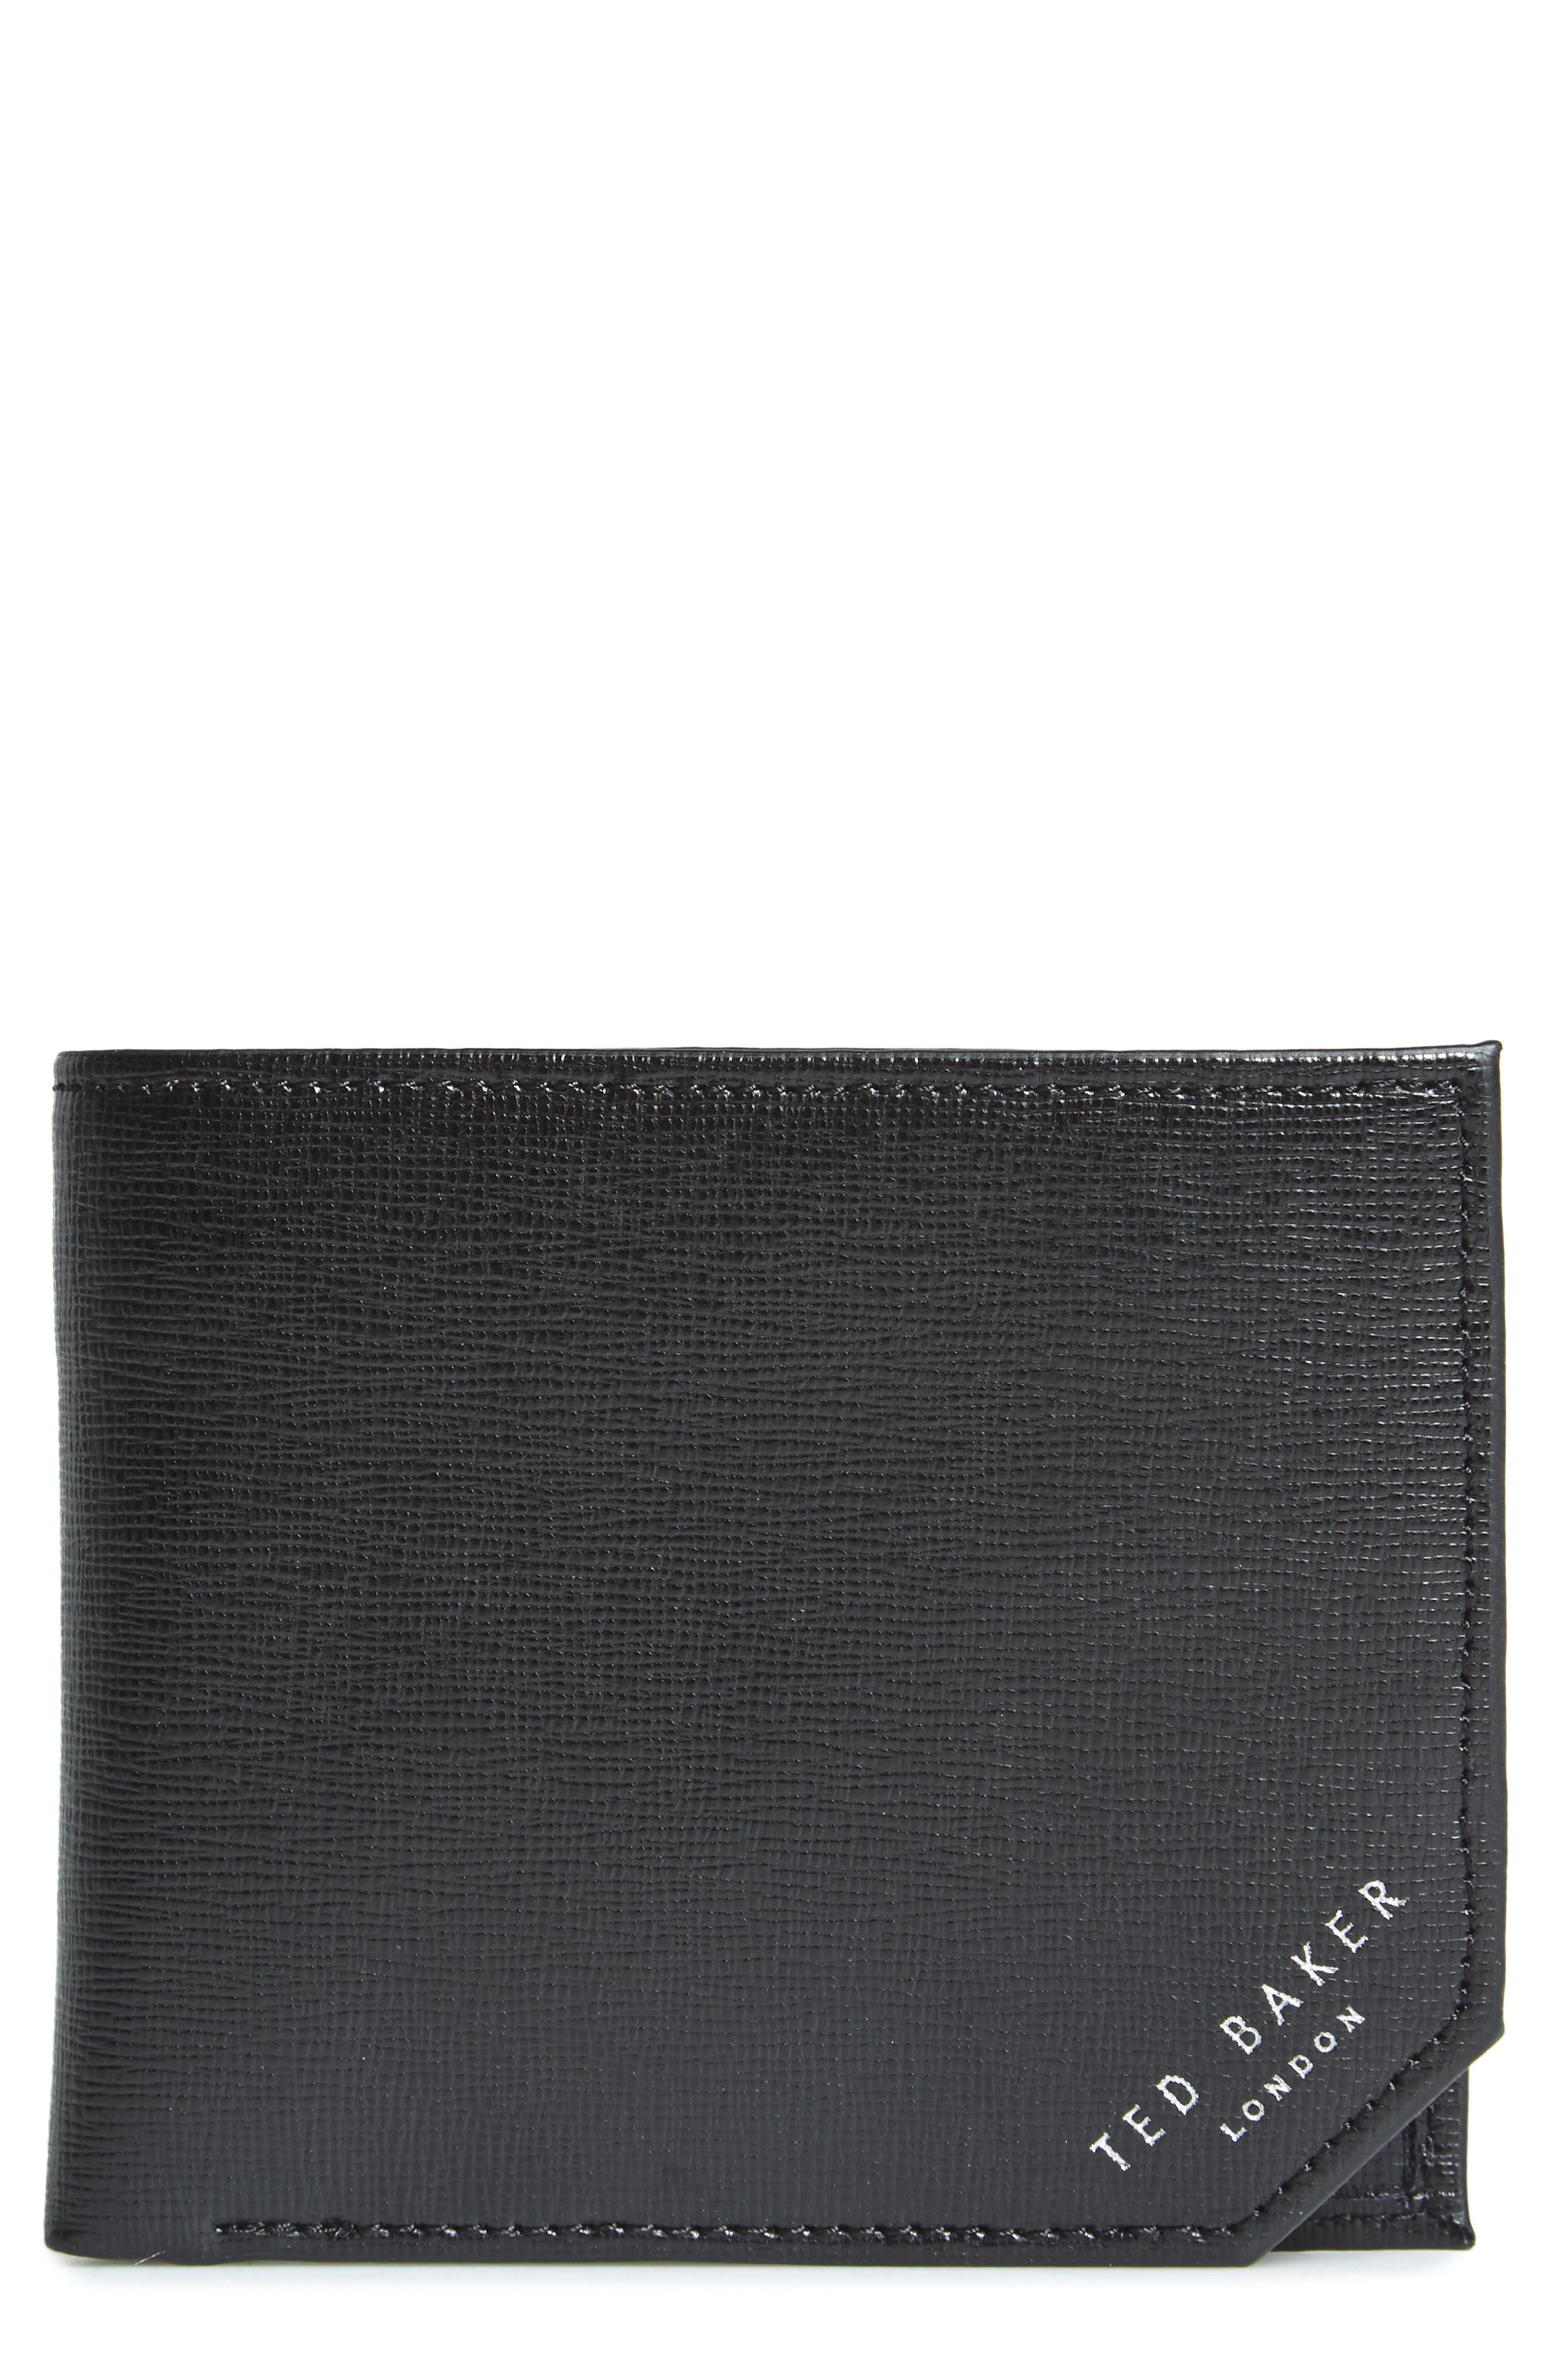 Ted Baker London Stitchup Bifold Wallet